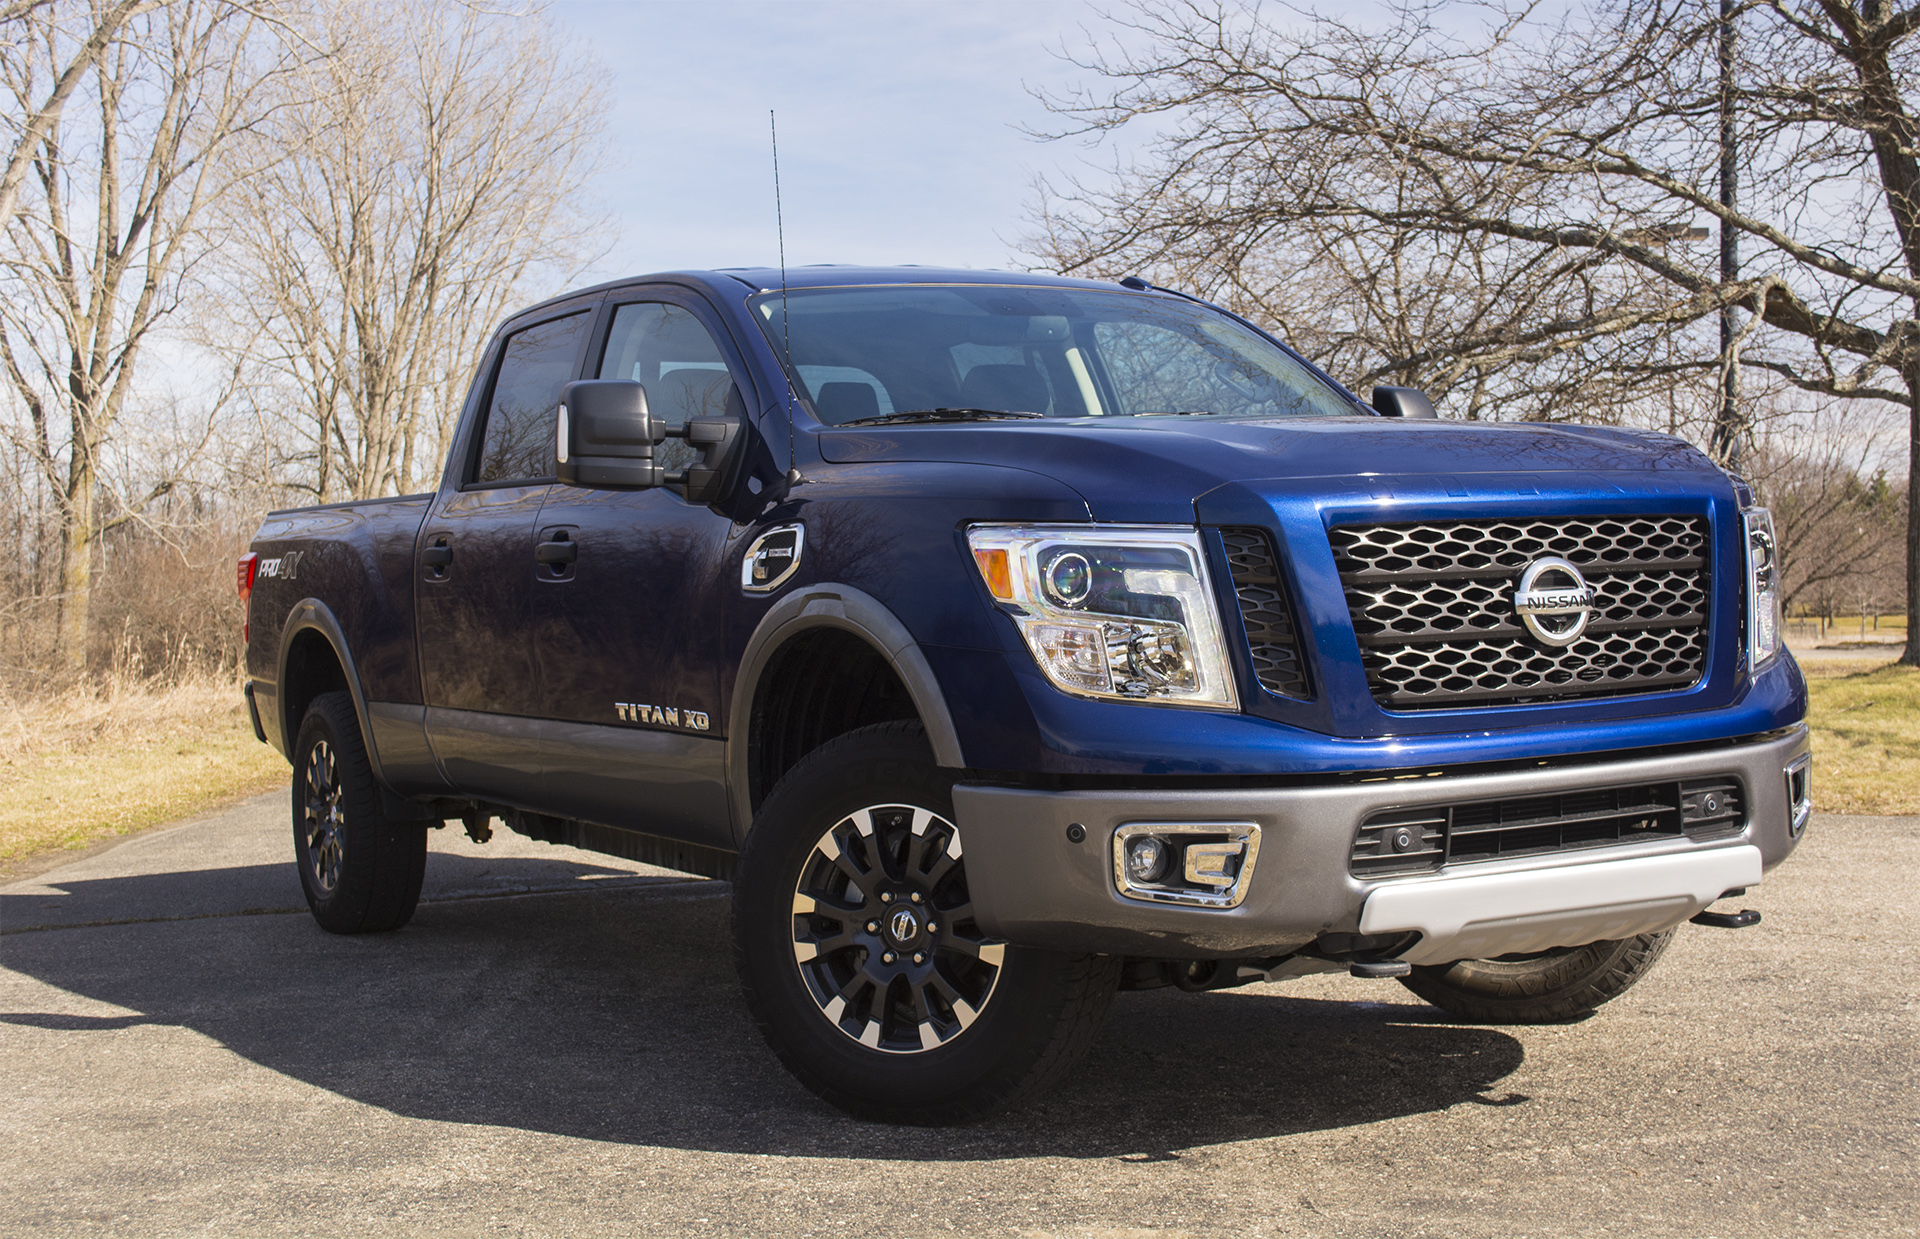 2016 nissan titan xd. Black Bedroom Furniture Sets. Home Design Ideas